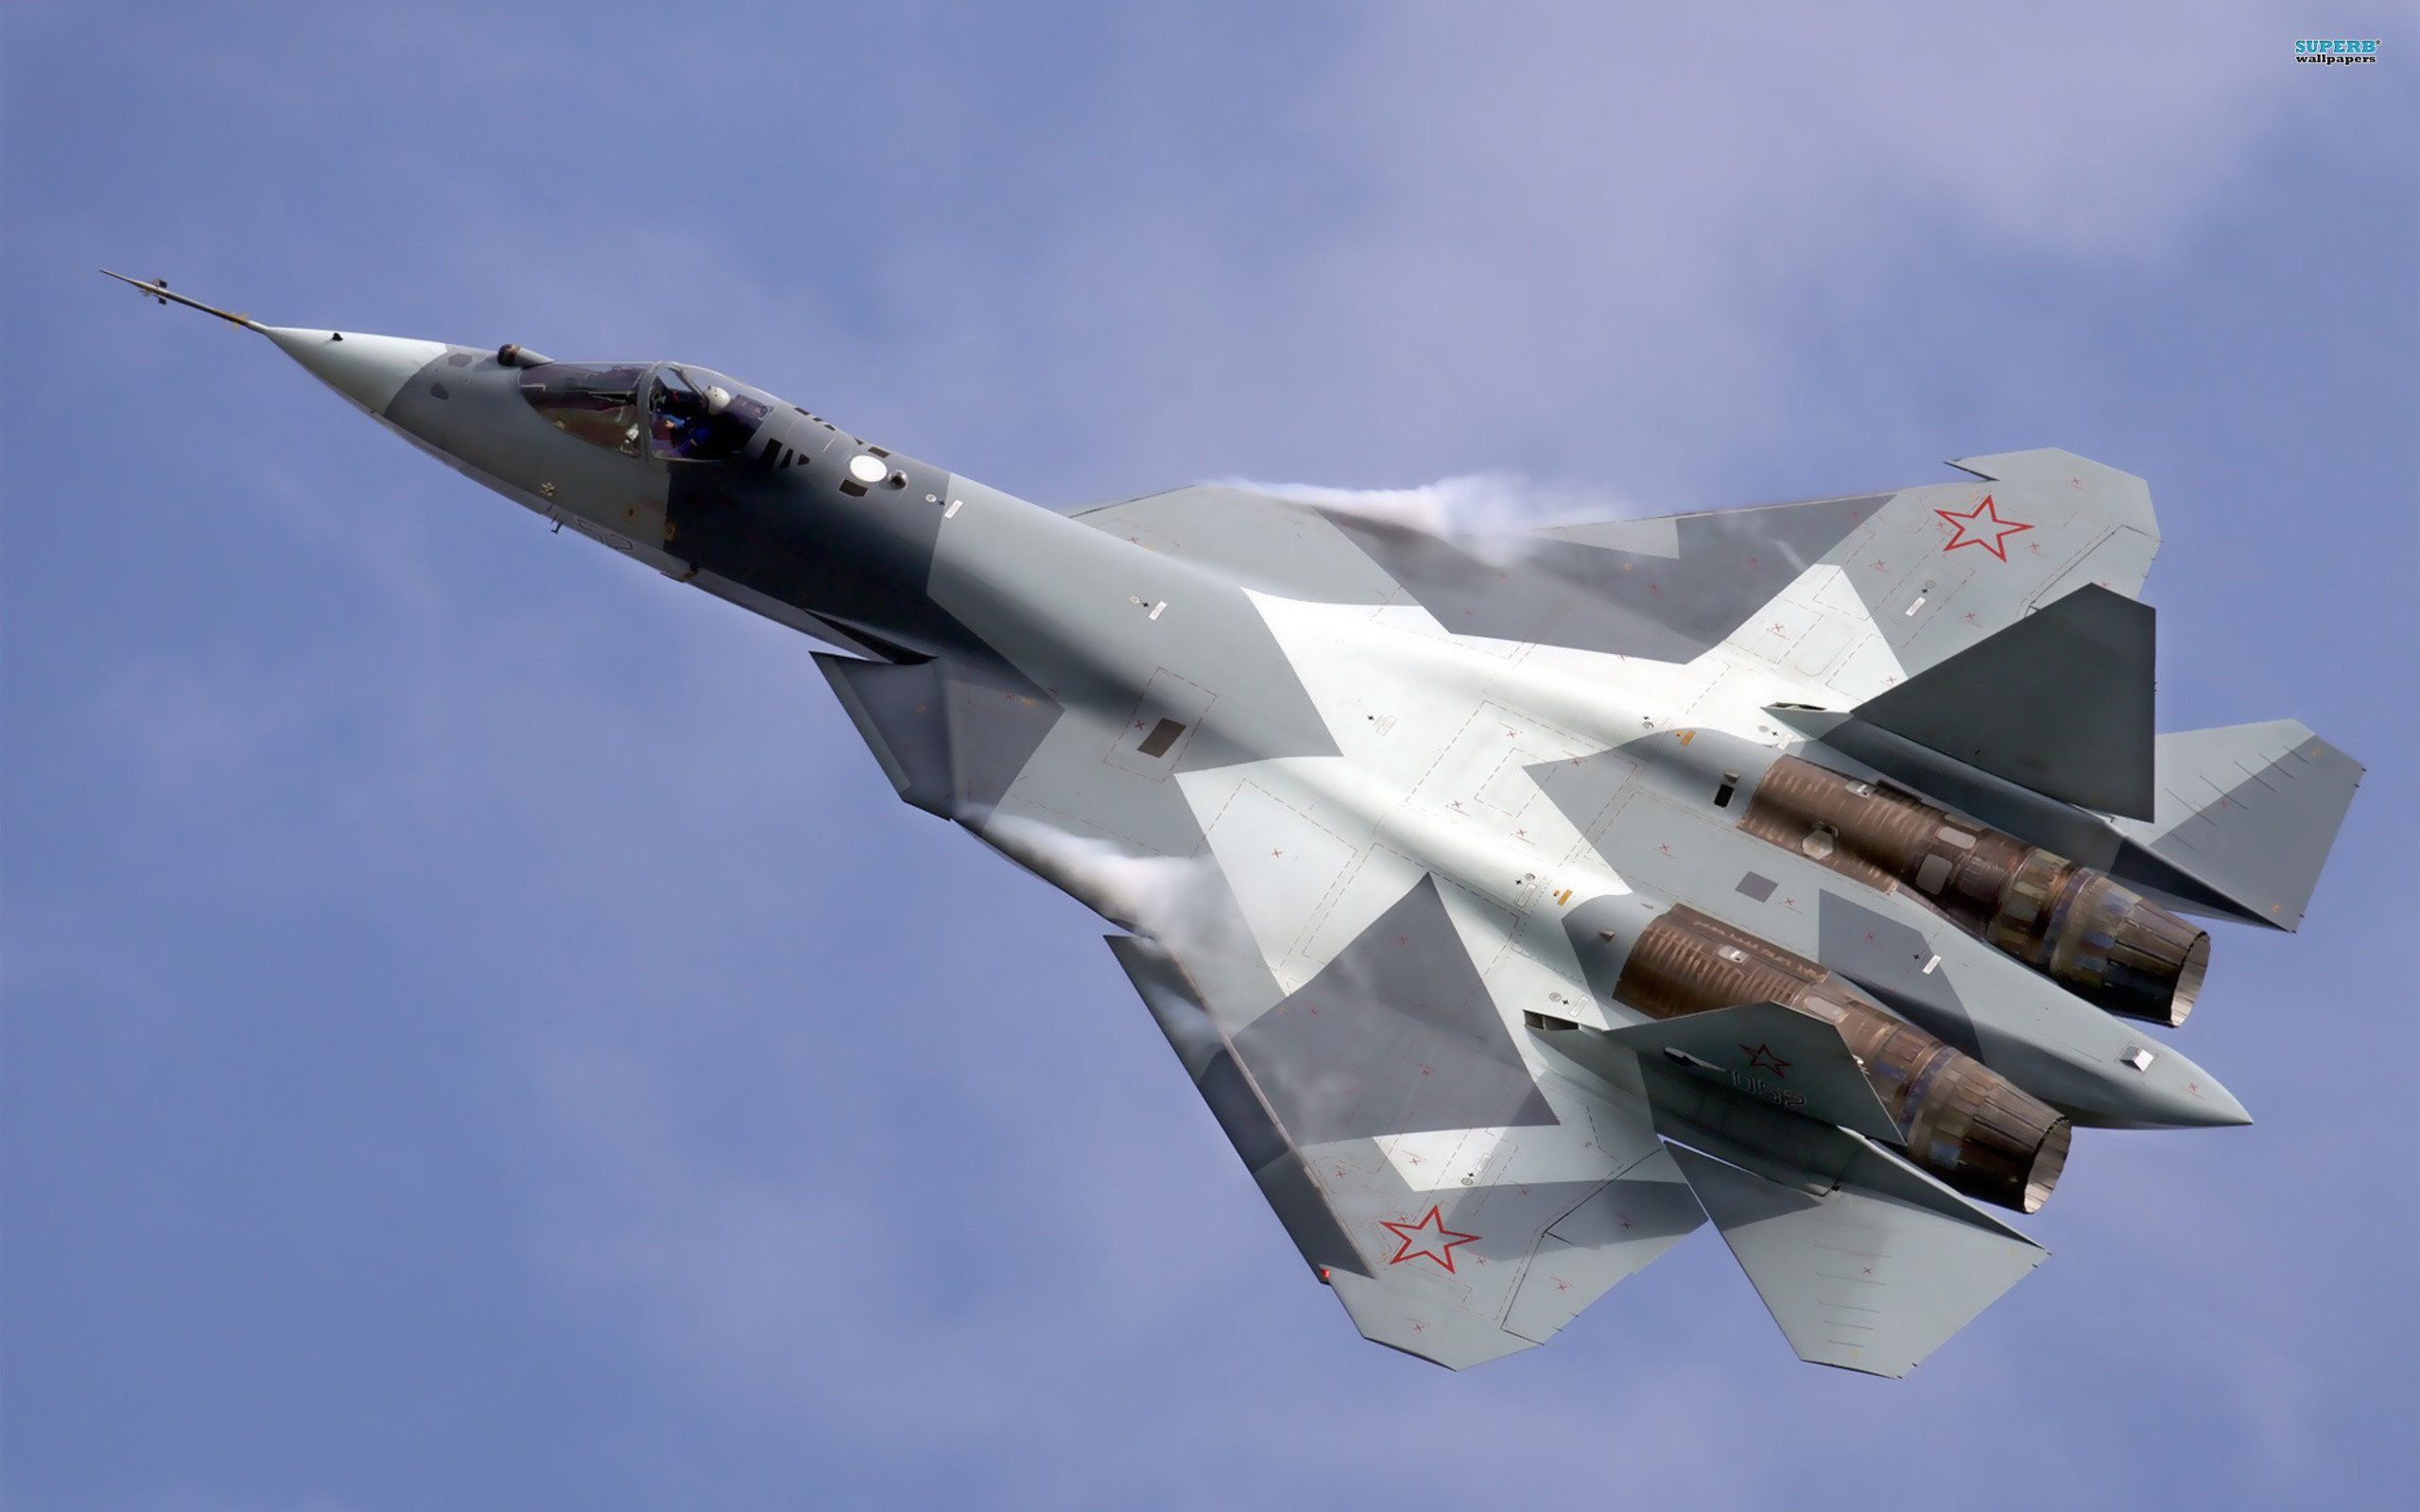 Sukhoi T-50 Fighter Jet military airplane plane stealth pak f-a russian (21)